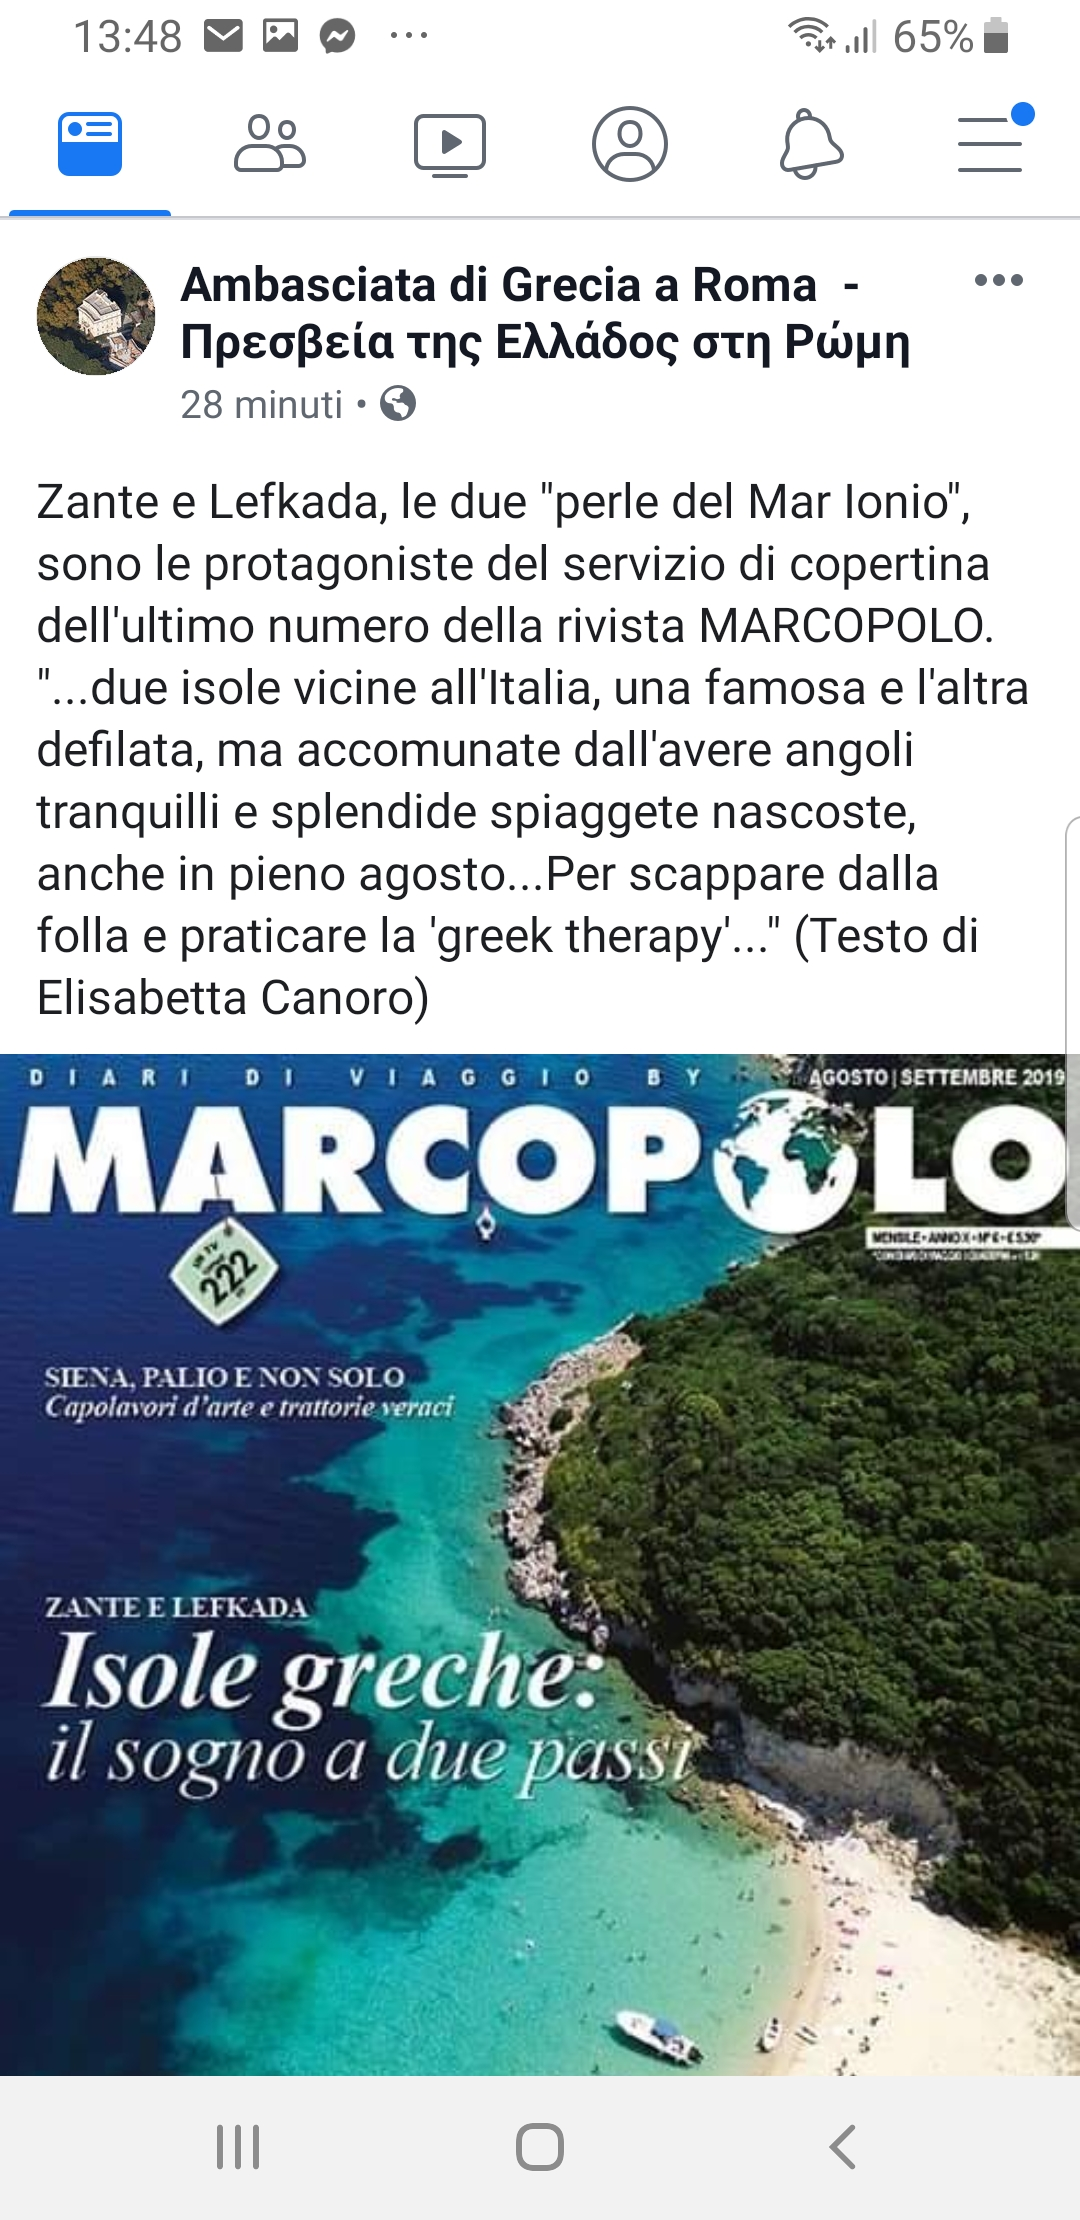 MARCOPOLO_MAG_EMBASSY